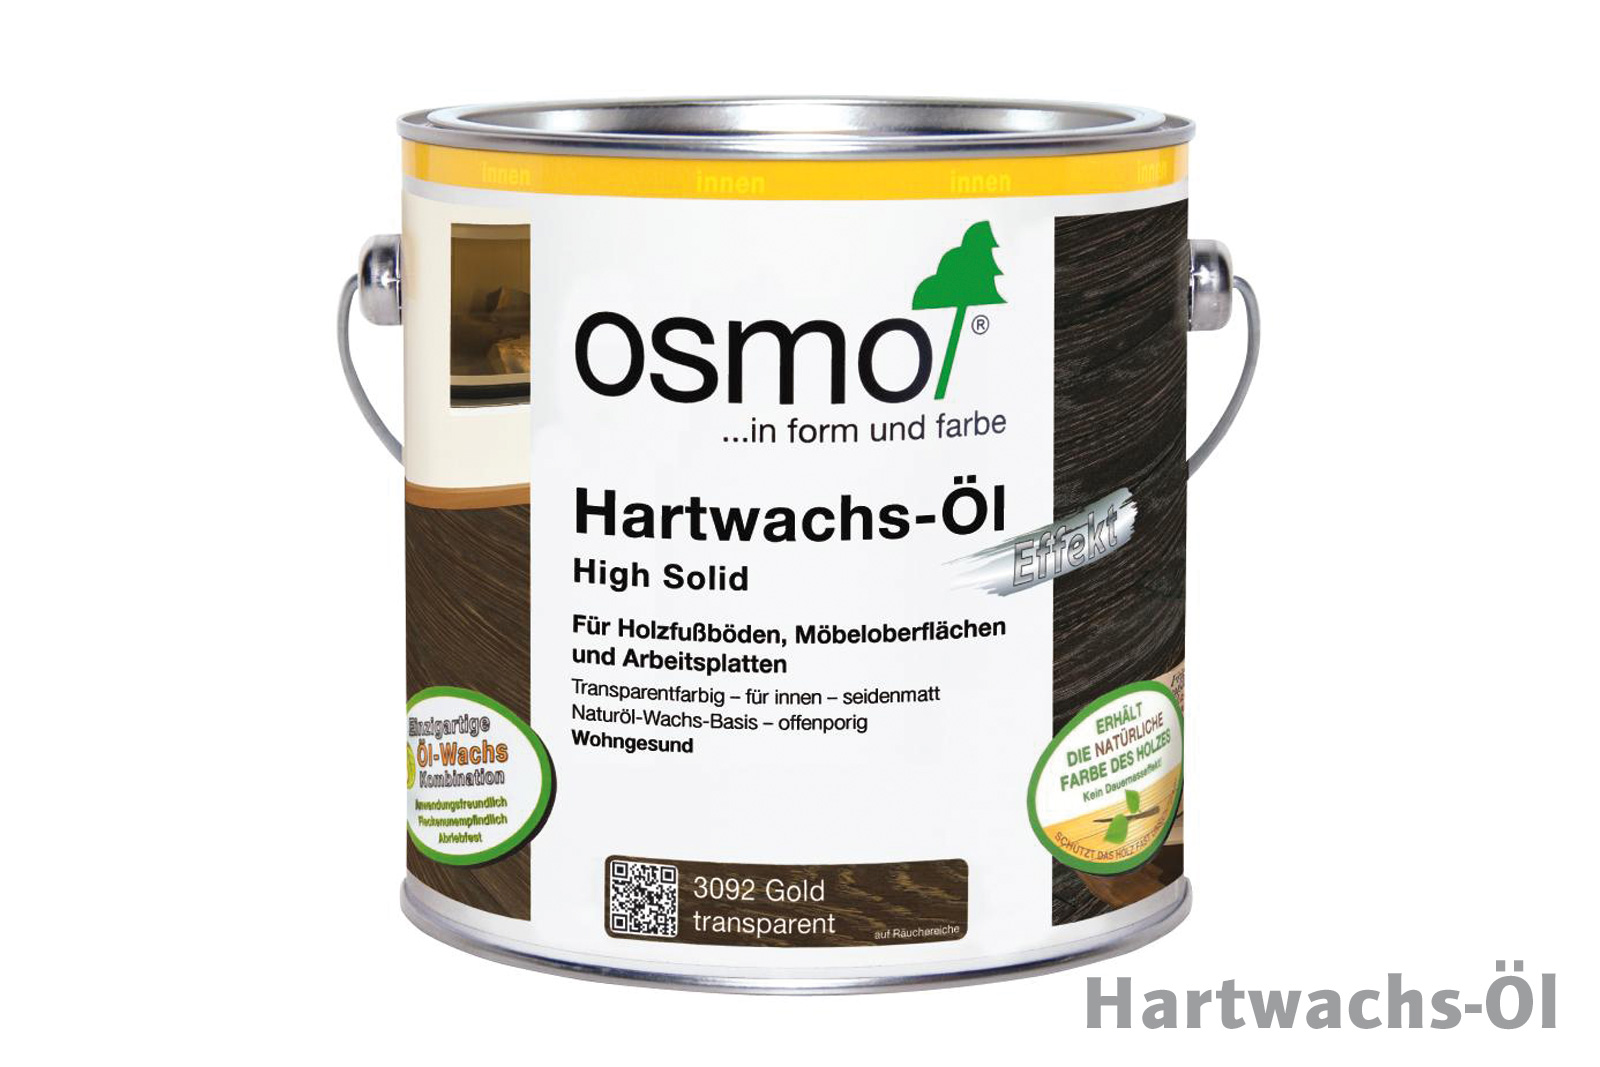 osmo hartwachs l effekt gold 3092 bei bauking direkt. Black Bedroom Furniture Sets. Home Design Ideas